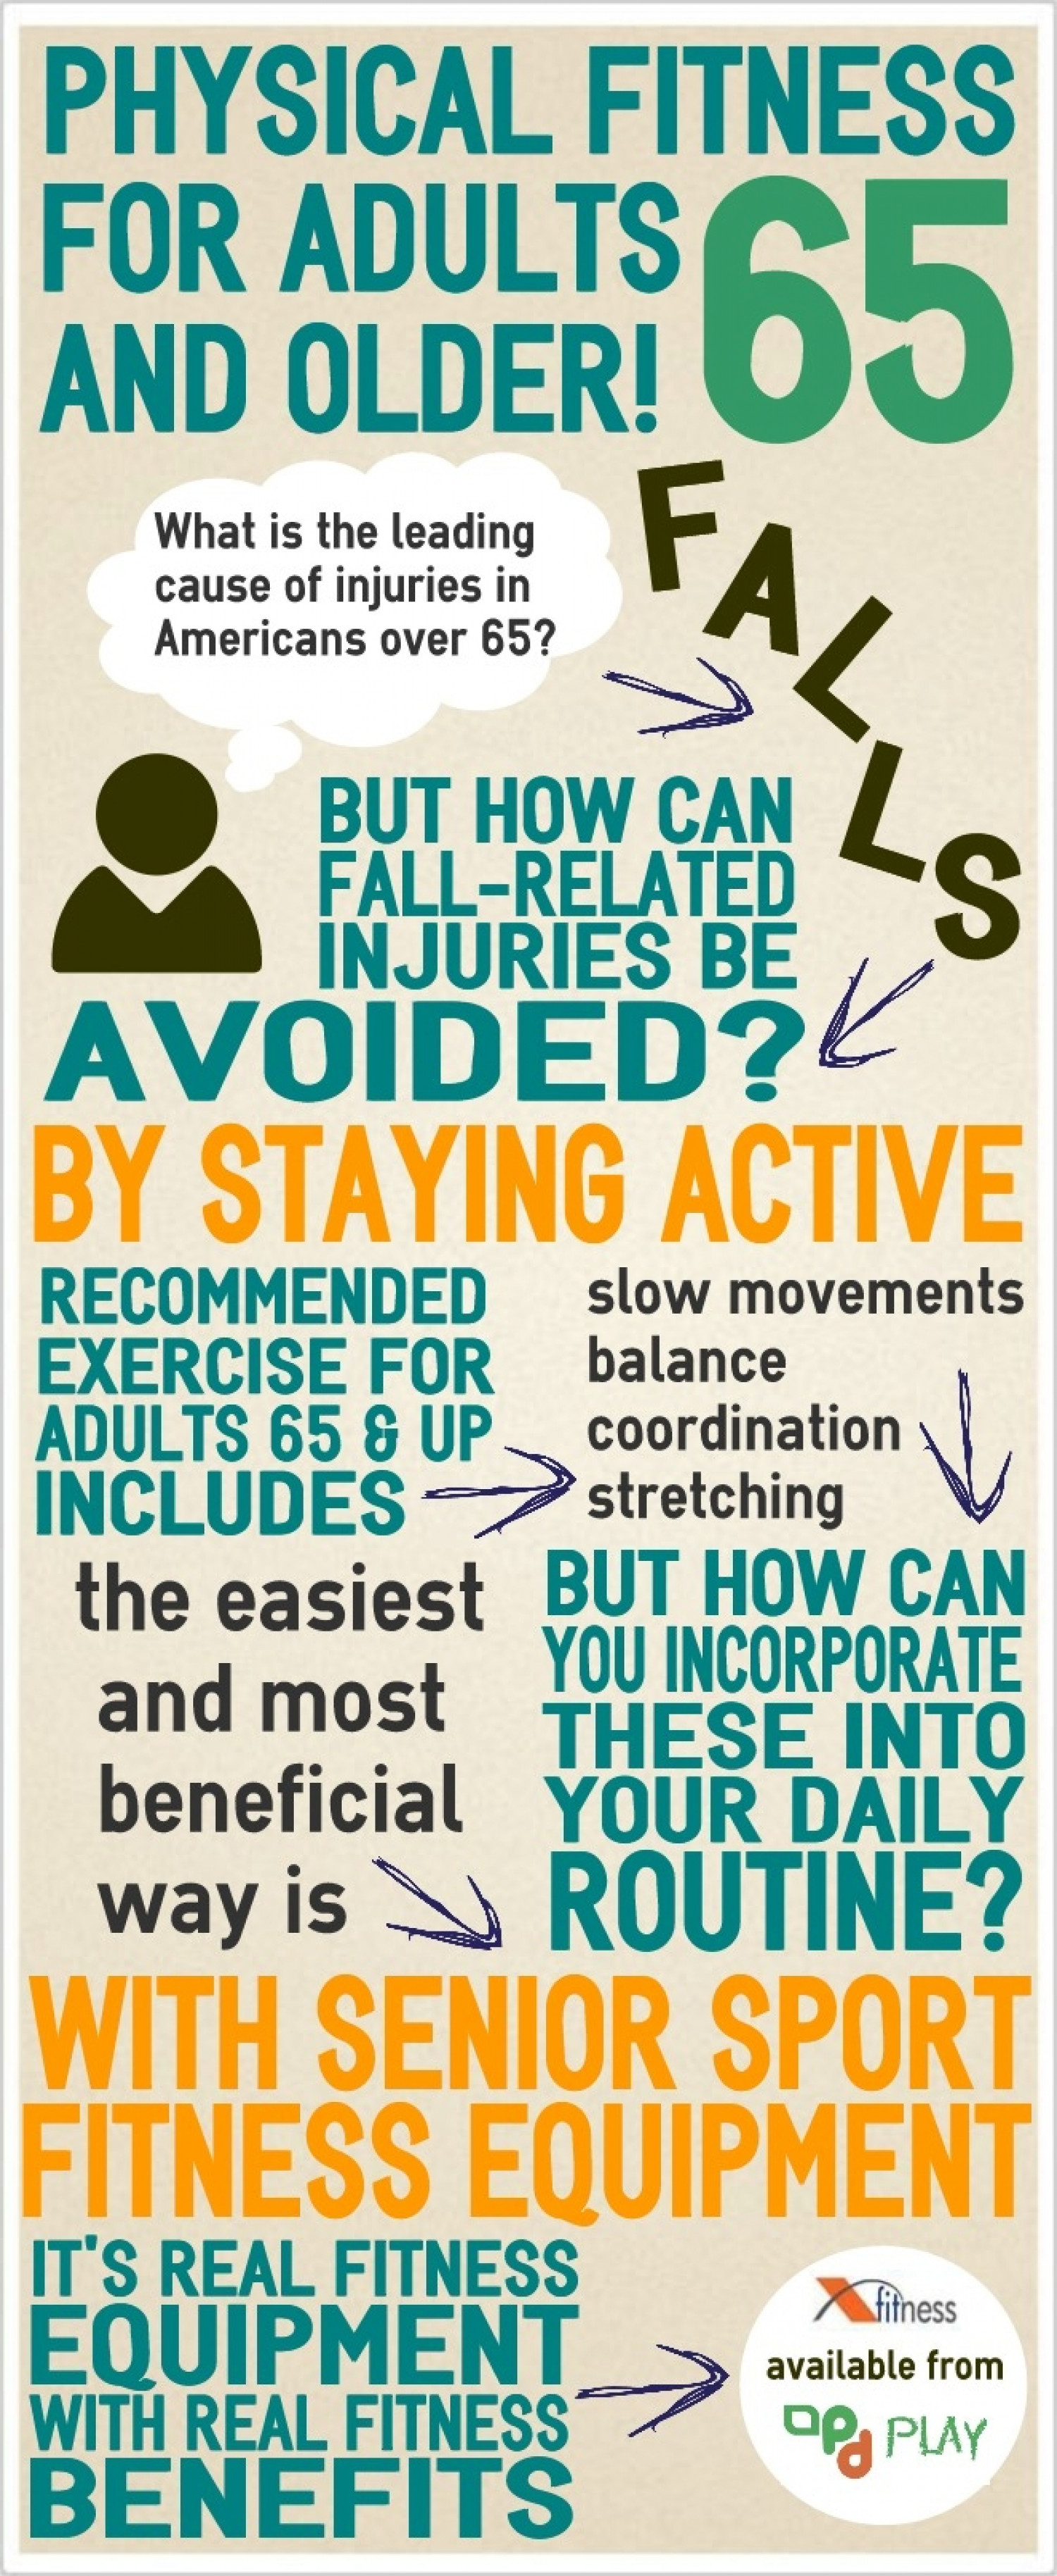 Physical Fitness for Adults 65 and Older Infographic